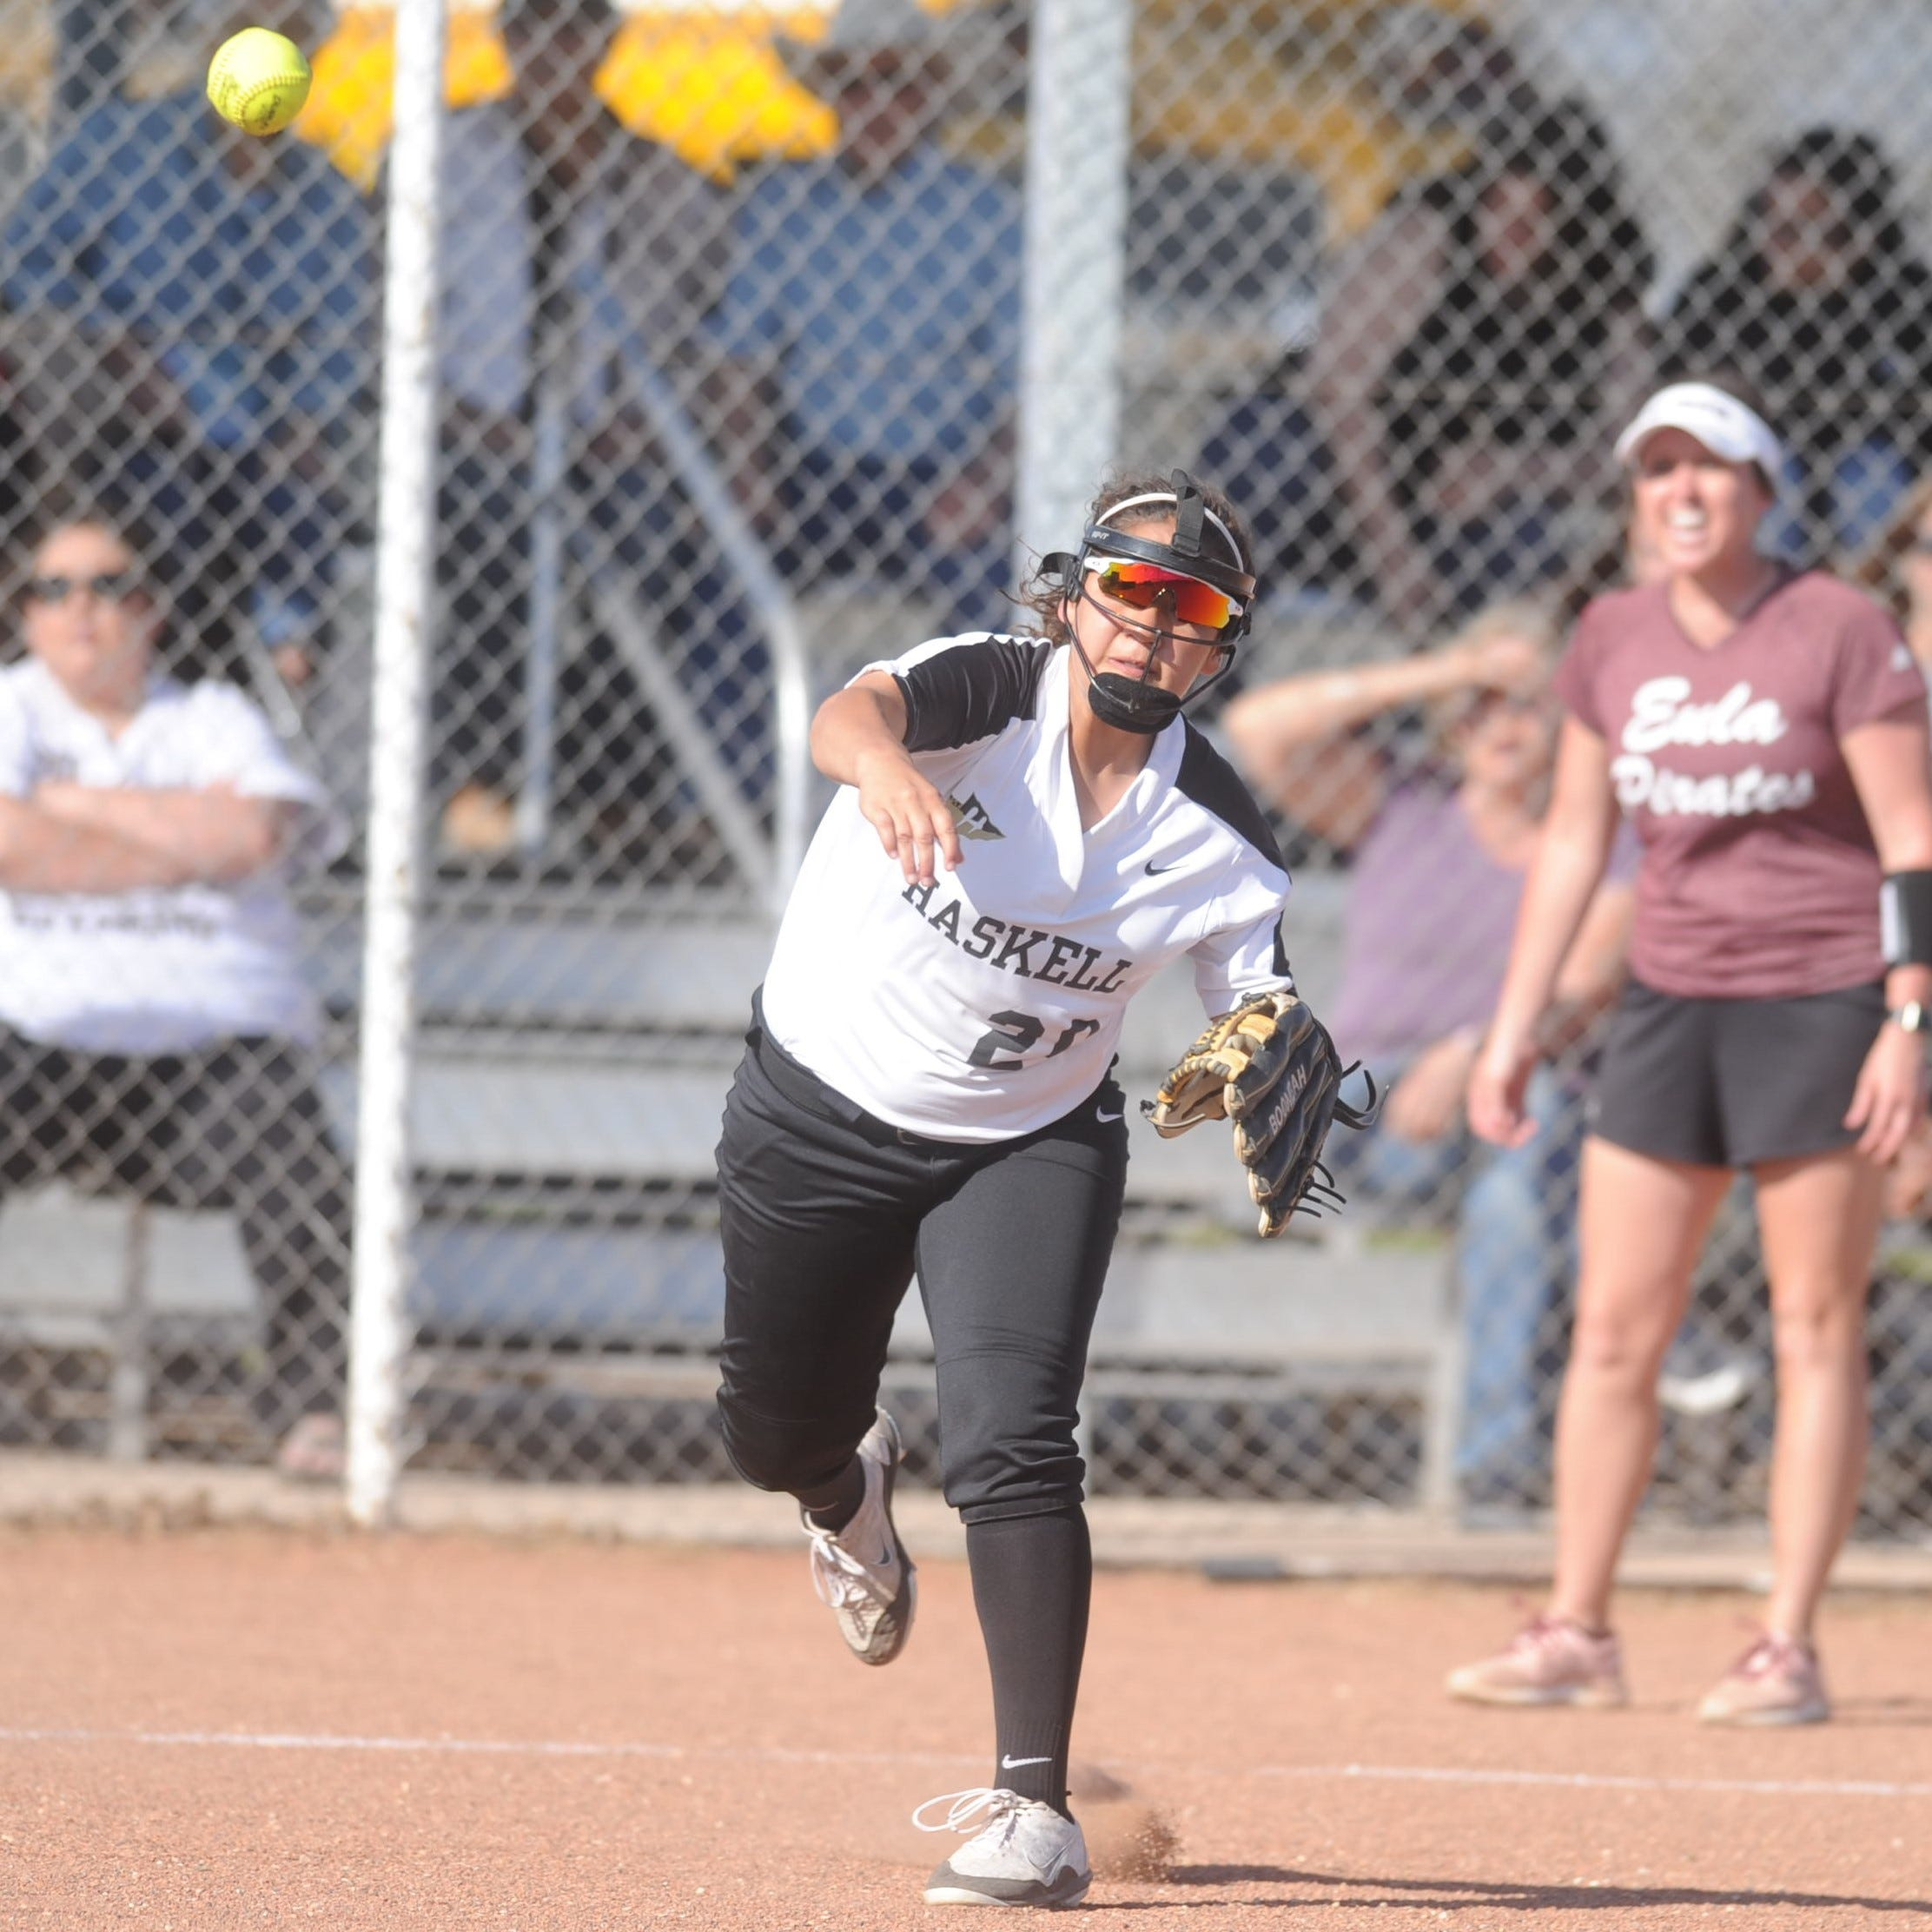 Explosive innings power Haskell past Eula in District 7-2A softball